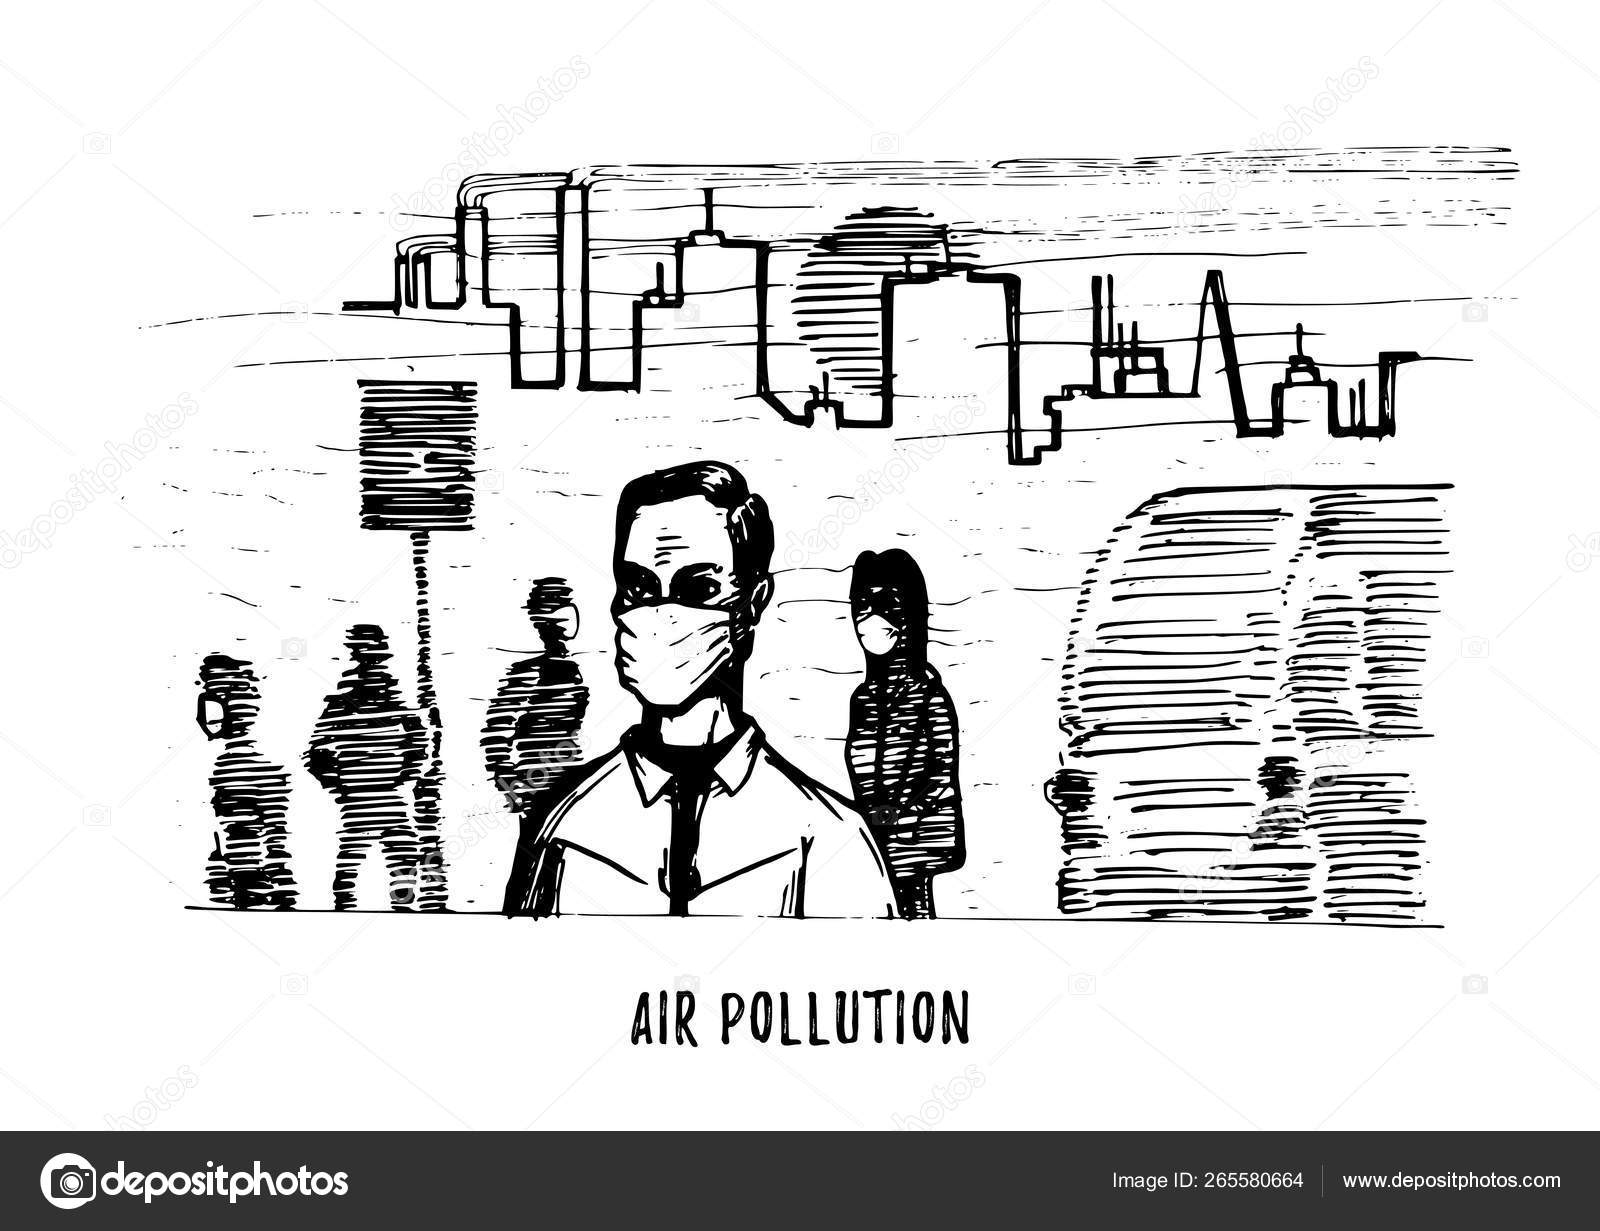 Air pollution hand drawn illustration sketch of smoggy